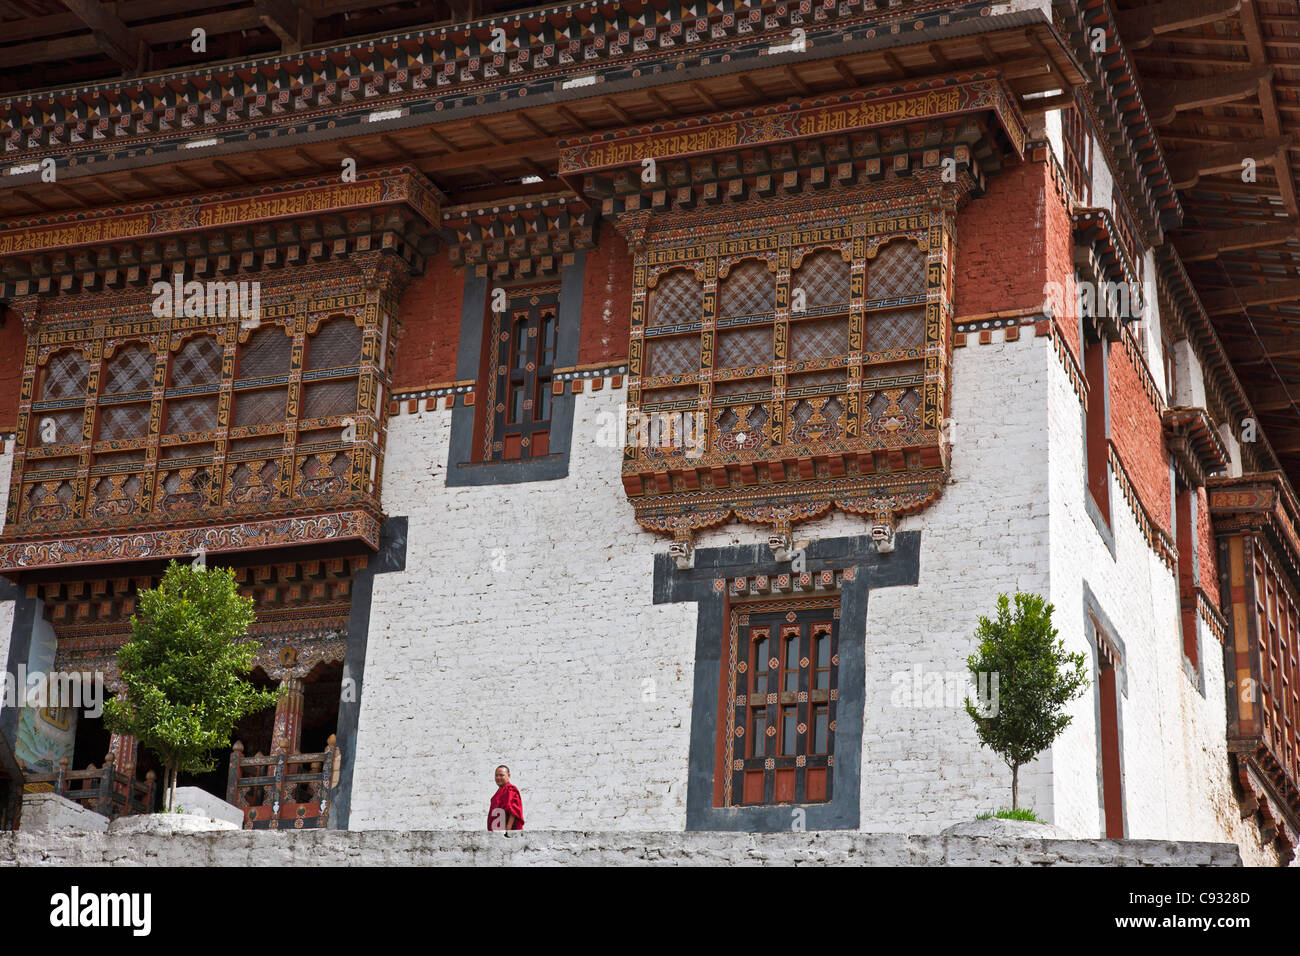 The striking interior of the massive Trongsa Dzong, or fortress, which was built in the 1640s. - Stock Image